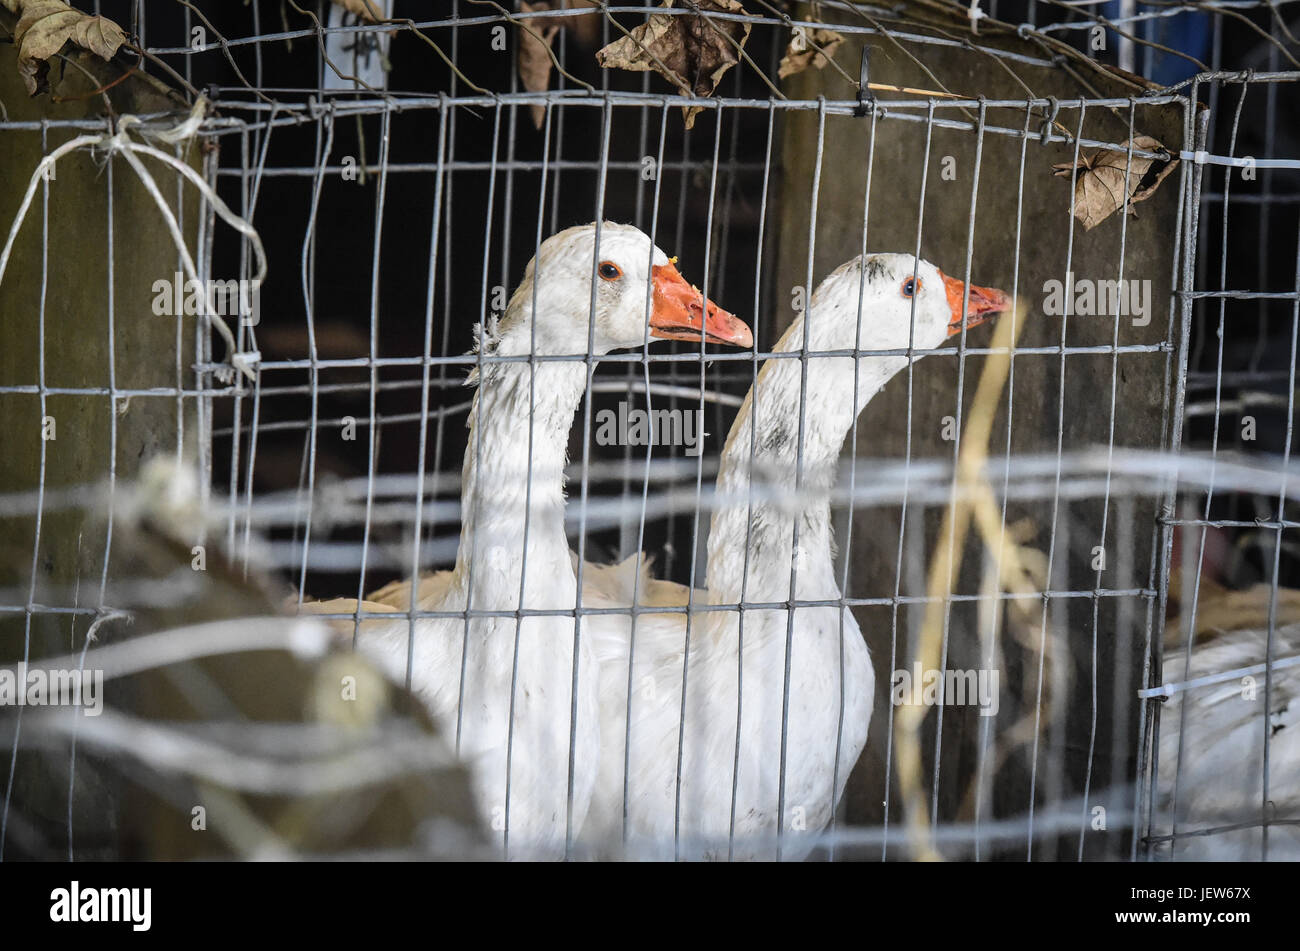 Copyrighted Image by Paul Slater/PSI - Geese at Tavistock Goose Fair. - Stock Image